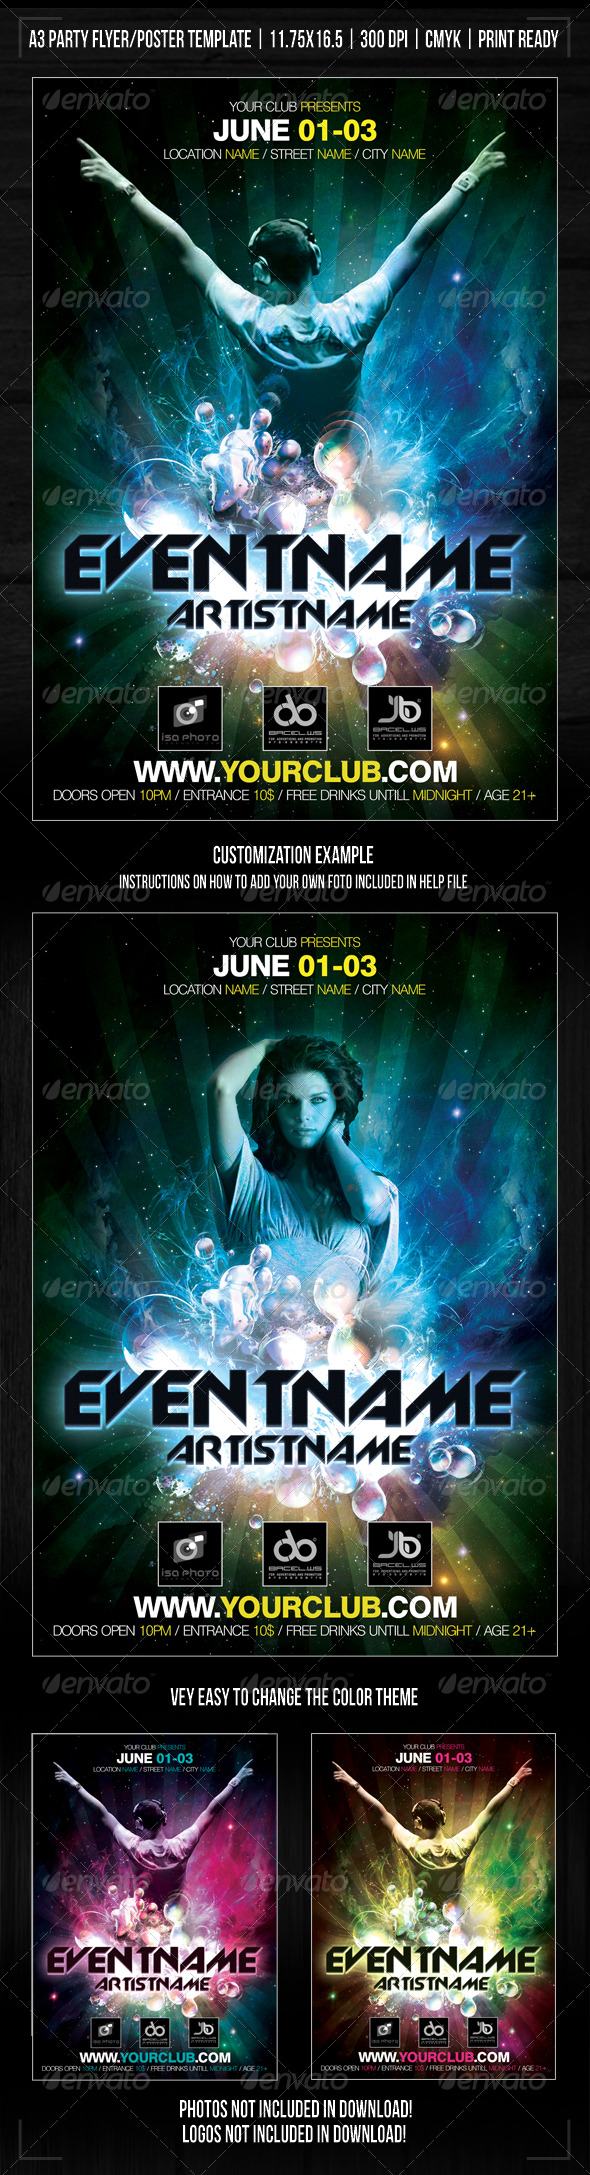 Nightclub Space Party Poster/Flyer Template - Clubs & Parties Events